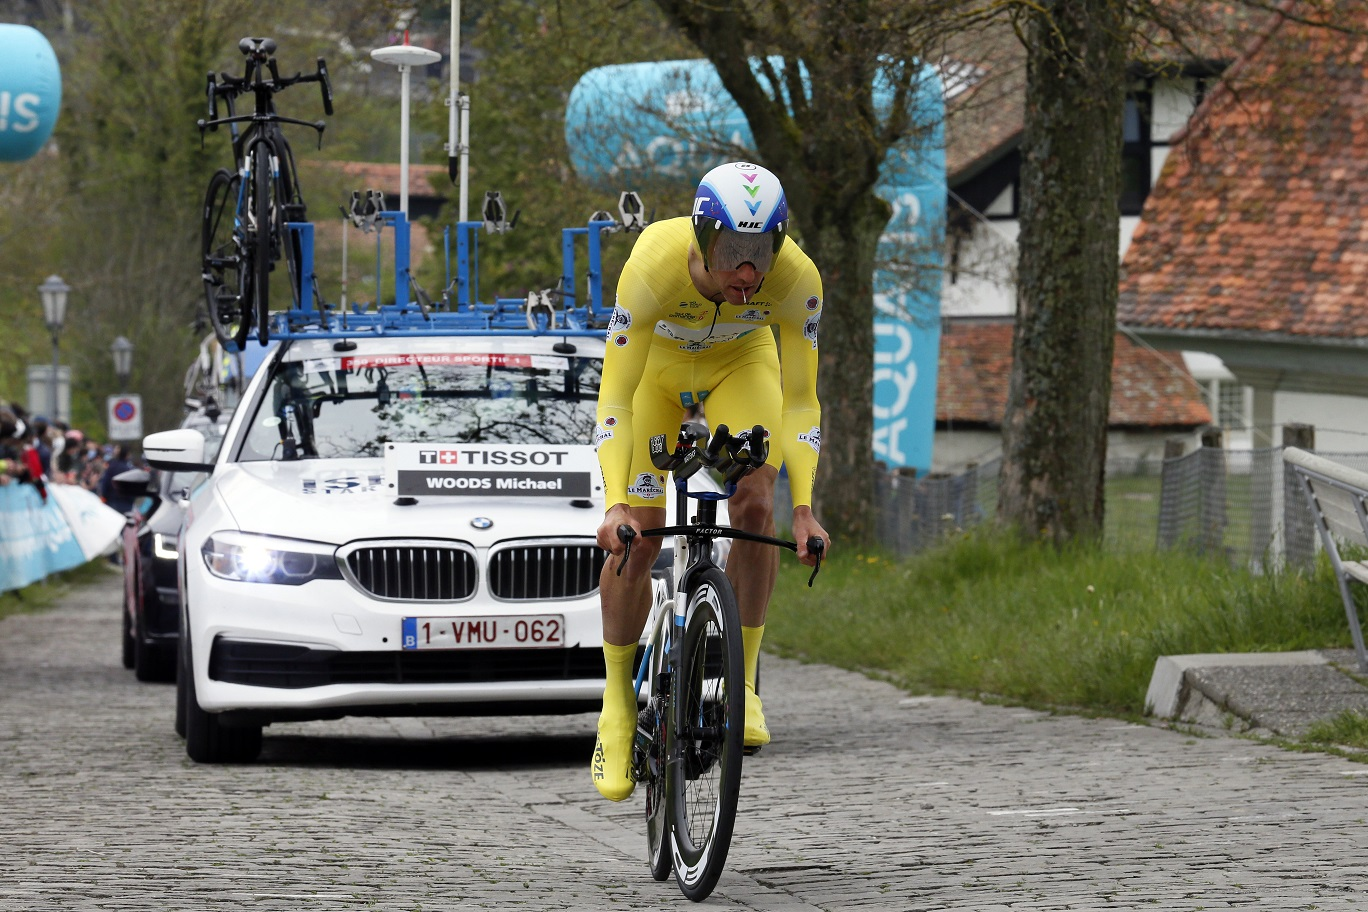 Woods finishes fifth overall in Tour de Romandie